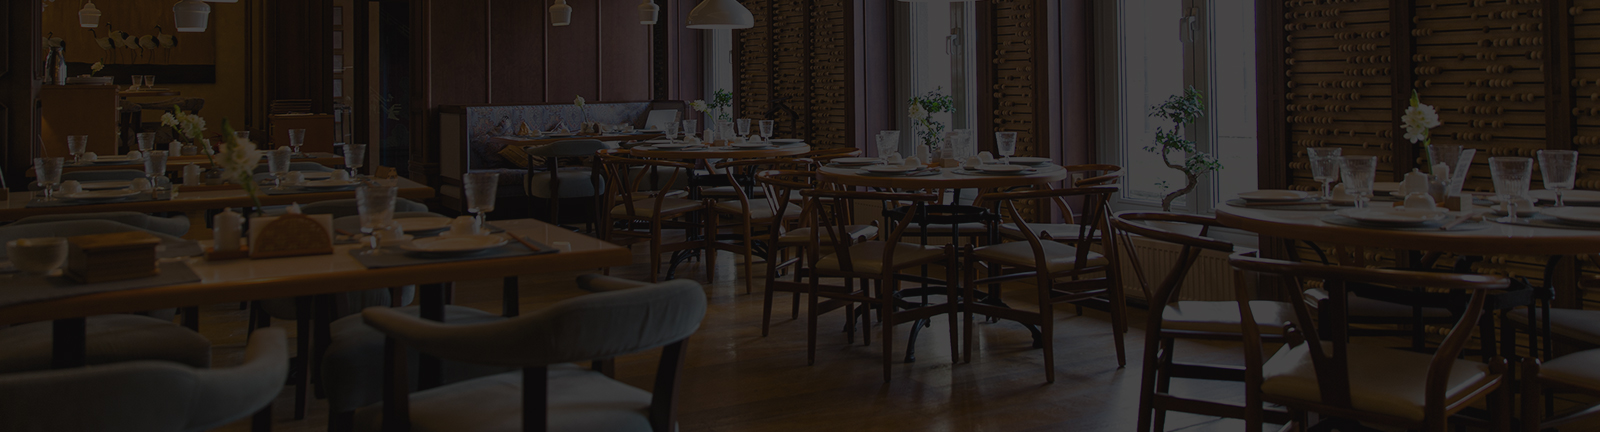 US restaurant sector continues to face headwinds in 2021